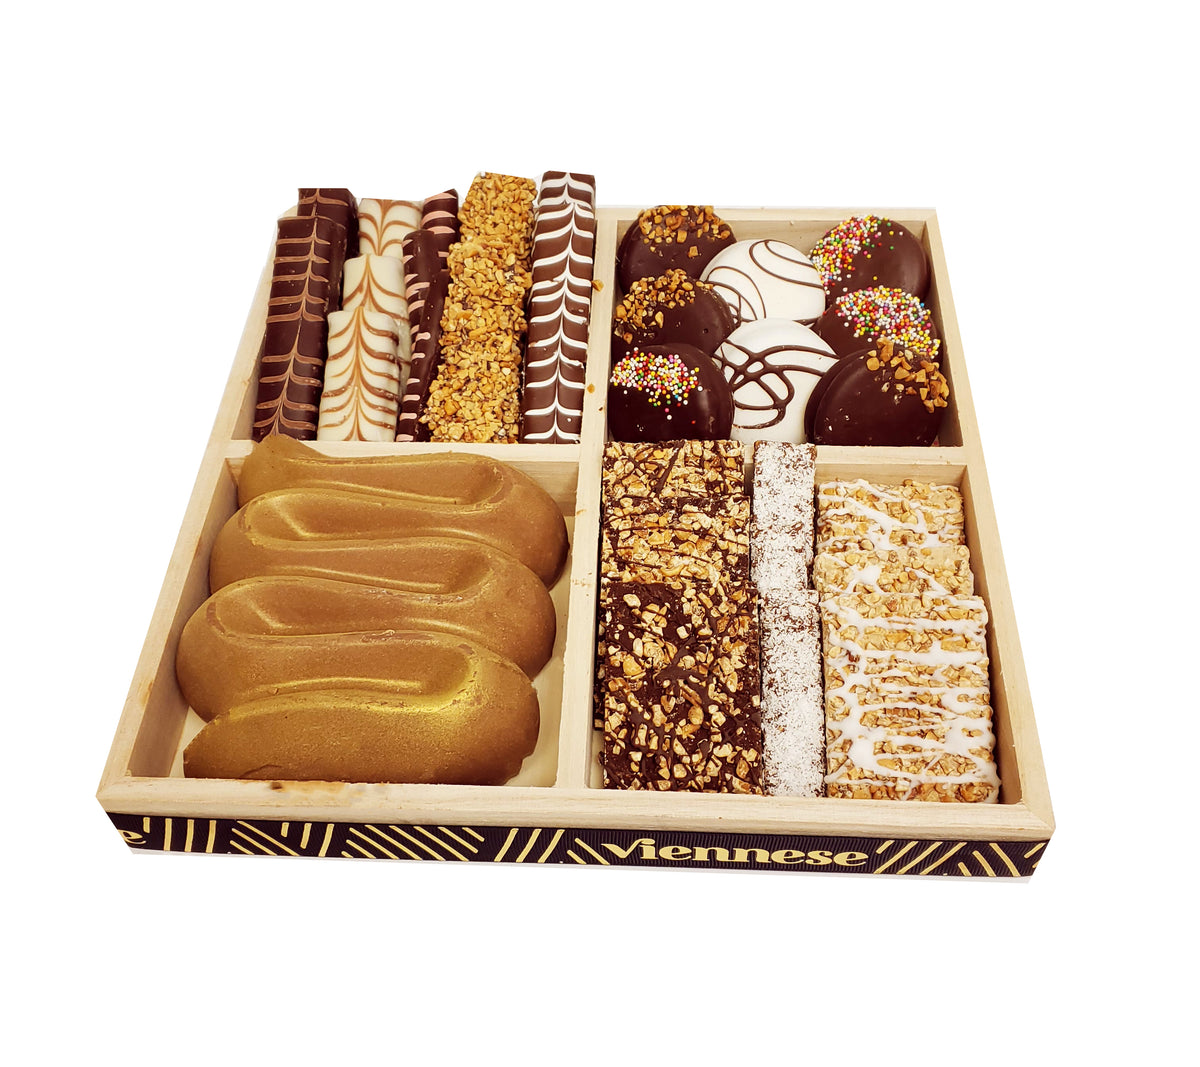 Mega Praline Chocolate Wood 4 Sectional Platter